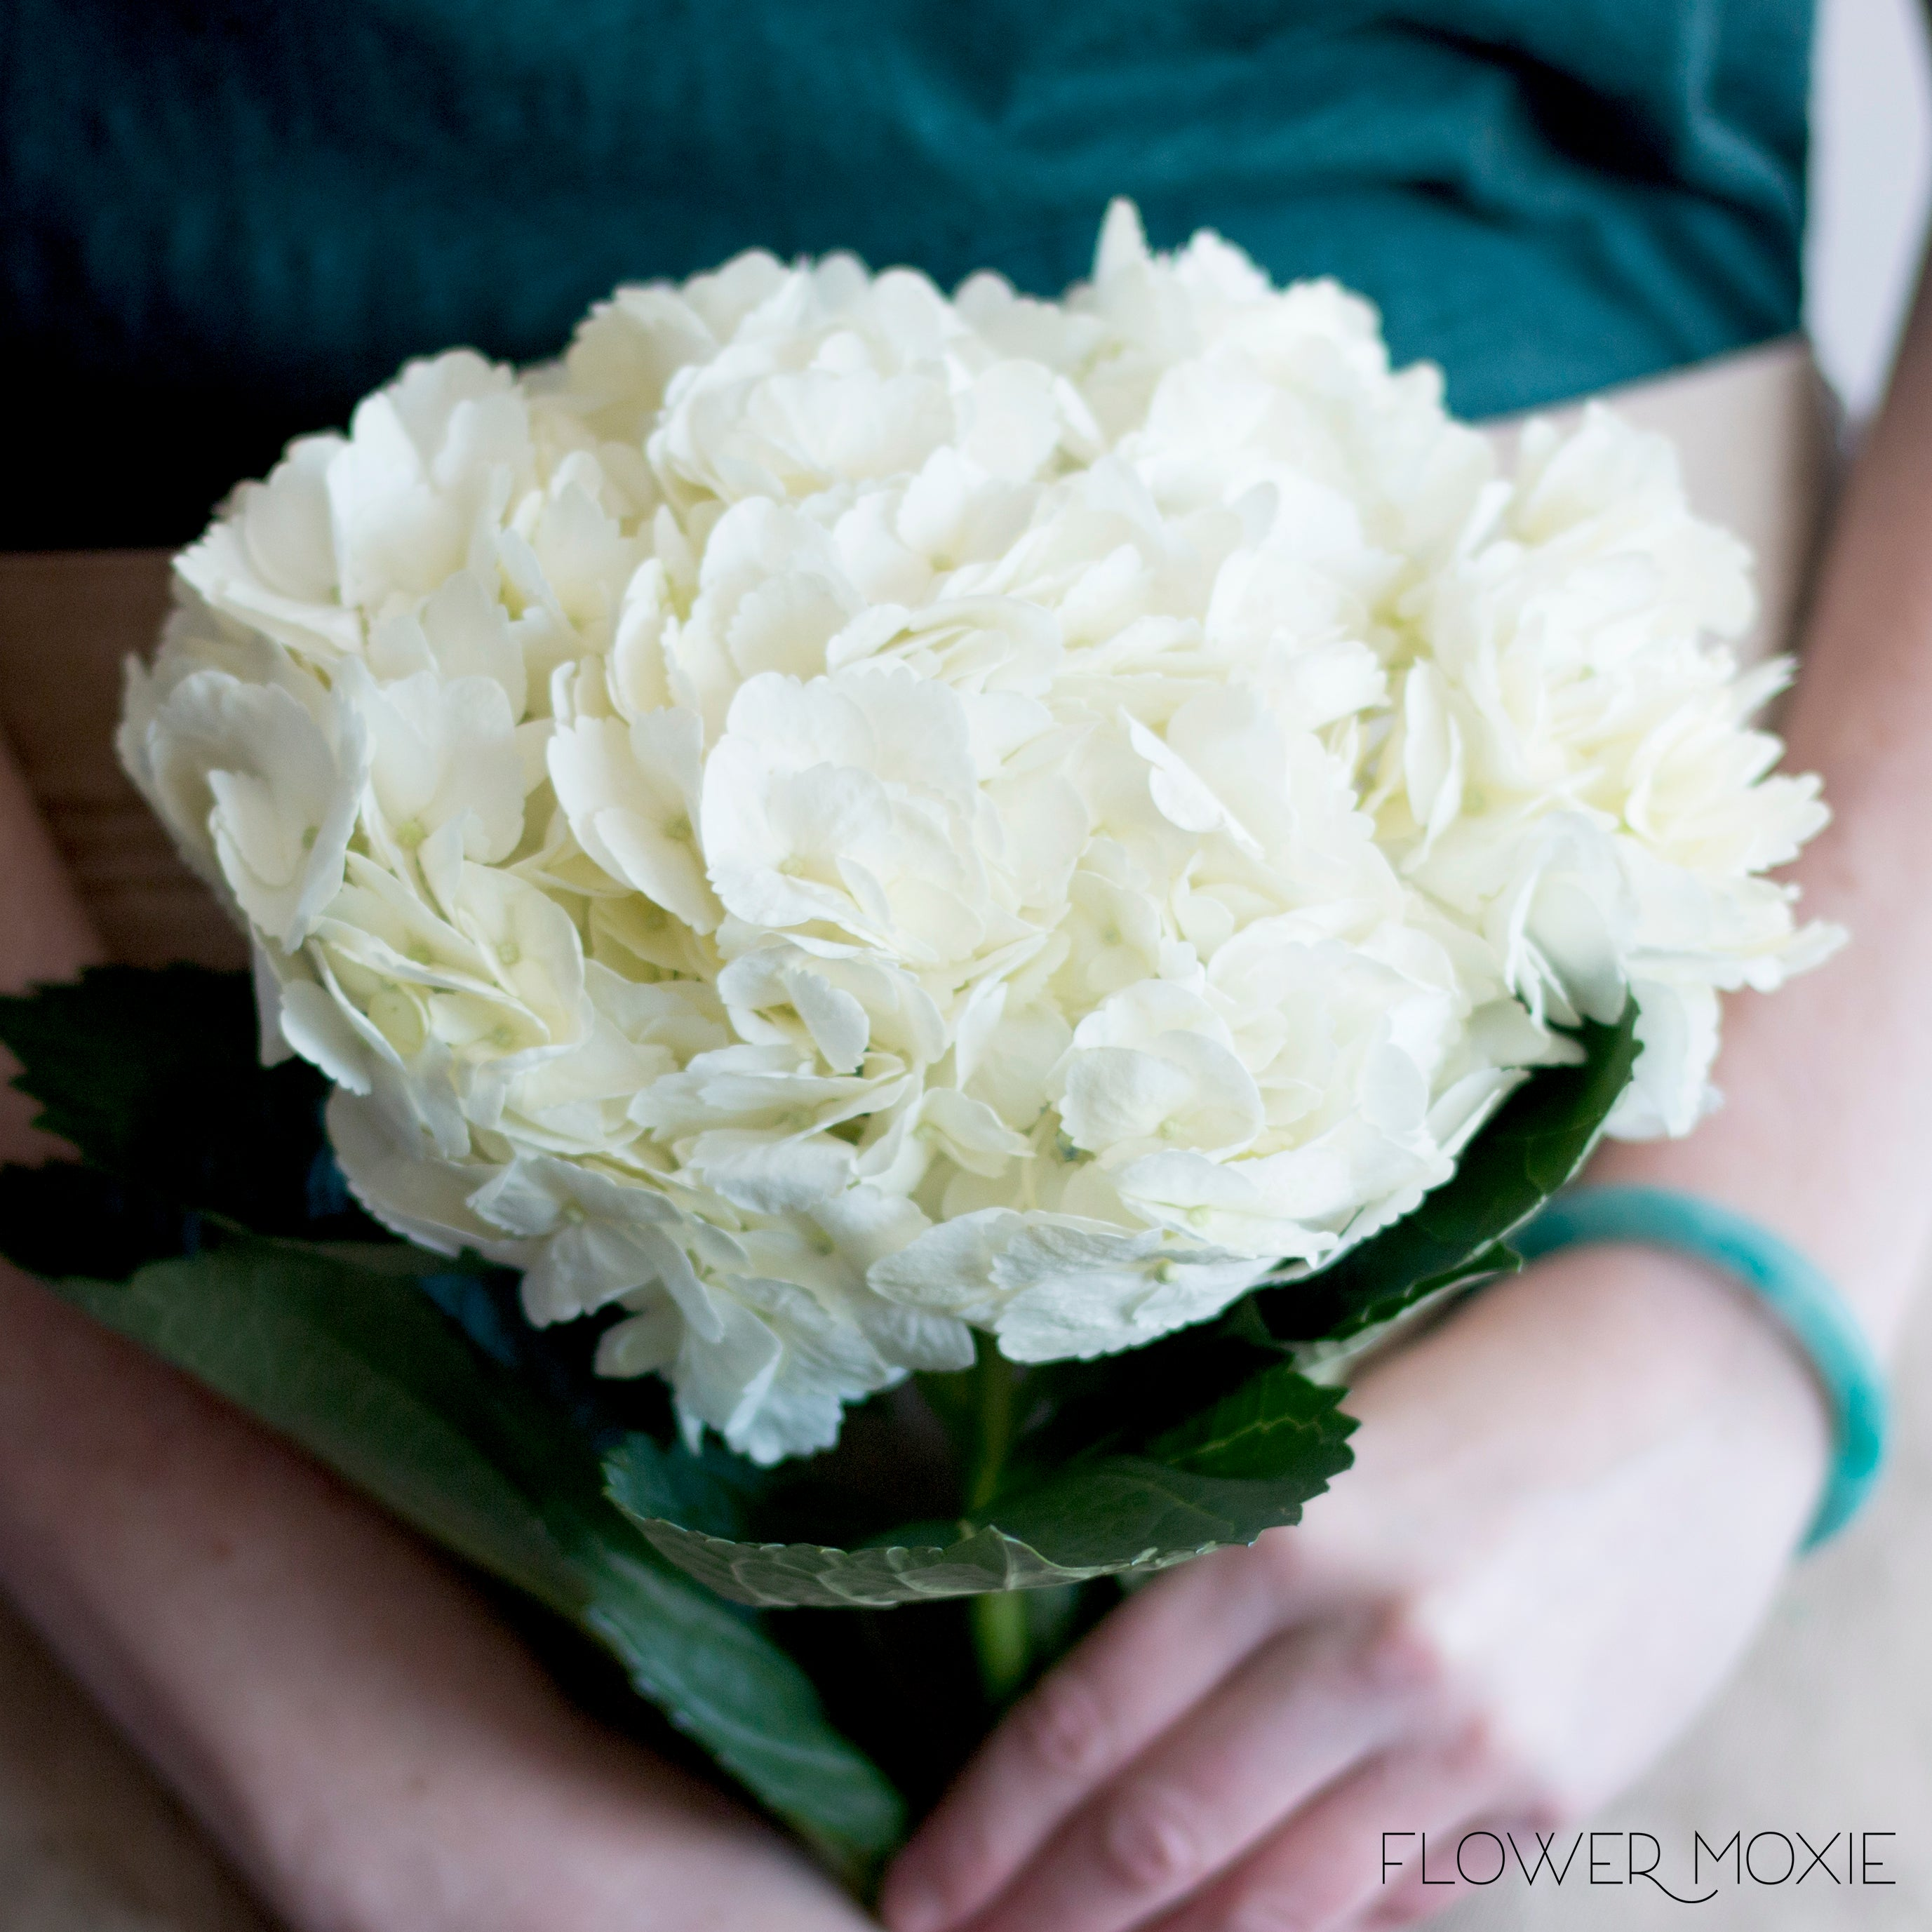 White Hydrangea Flowers Bulk Fresh Wedding Flowers Flower Moxie